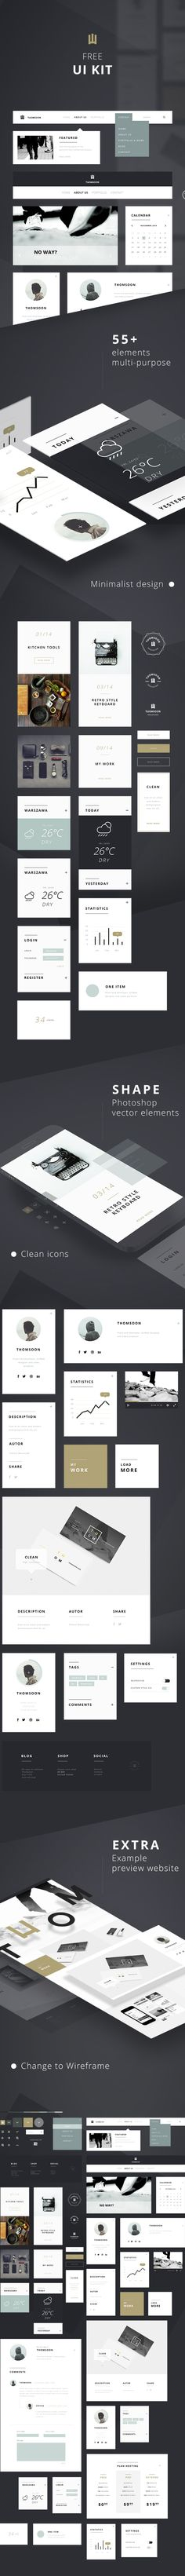 55+ Elements FREE UI KIT | Clean white [DOWNLOAD] on Behance